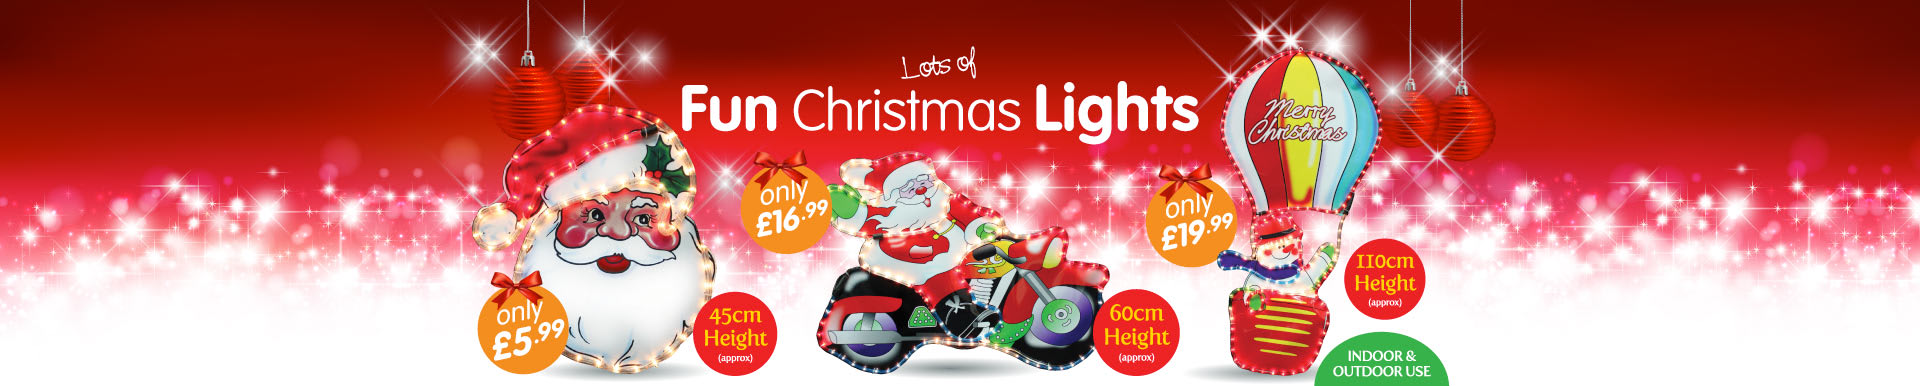 Great selection of Christmas fun lights available at B&M Stores.